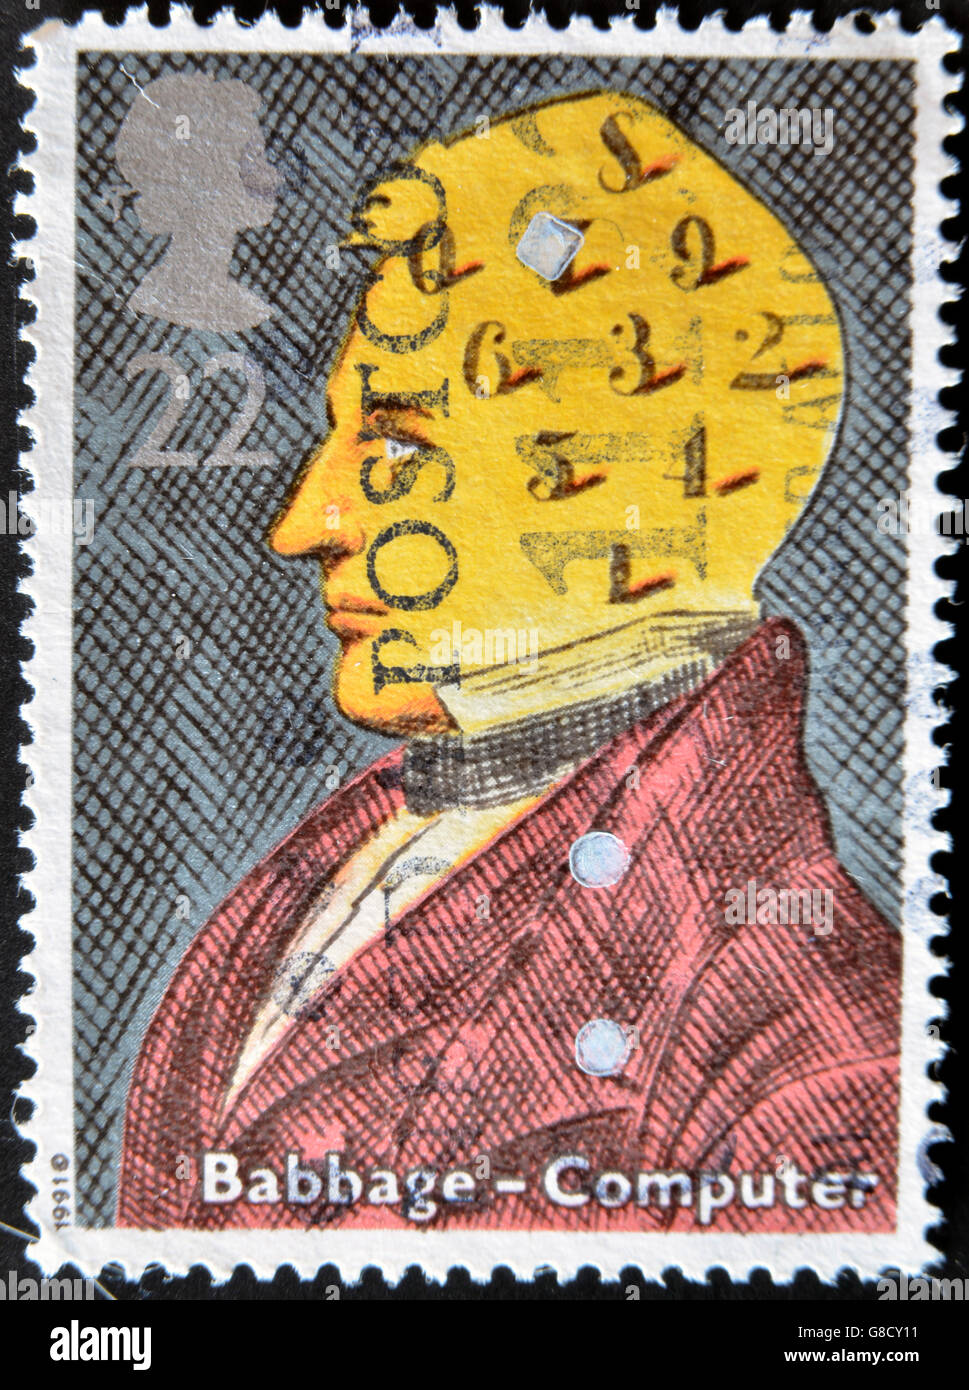 UNITED KINGDOM - CIRCA 1991: a stamp printed in the Great Britain shows Charles Babbage, computers, circa 1991 - Stock Image